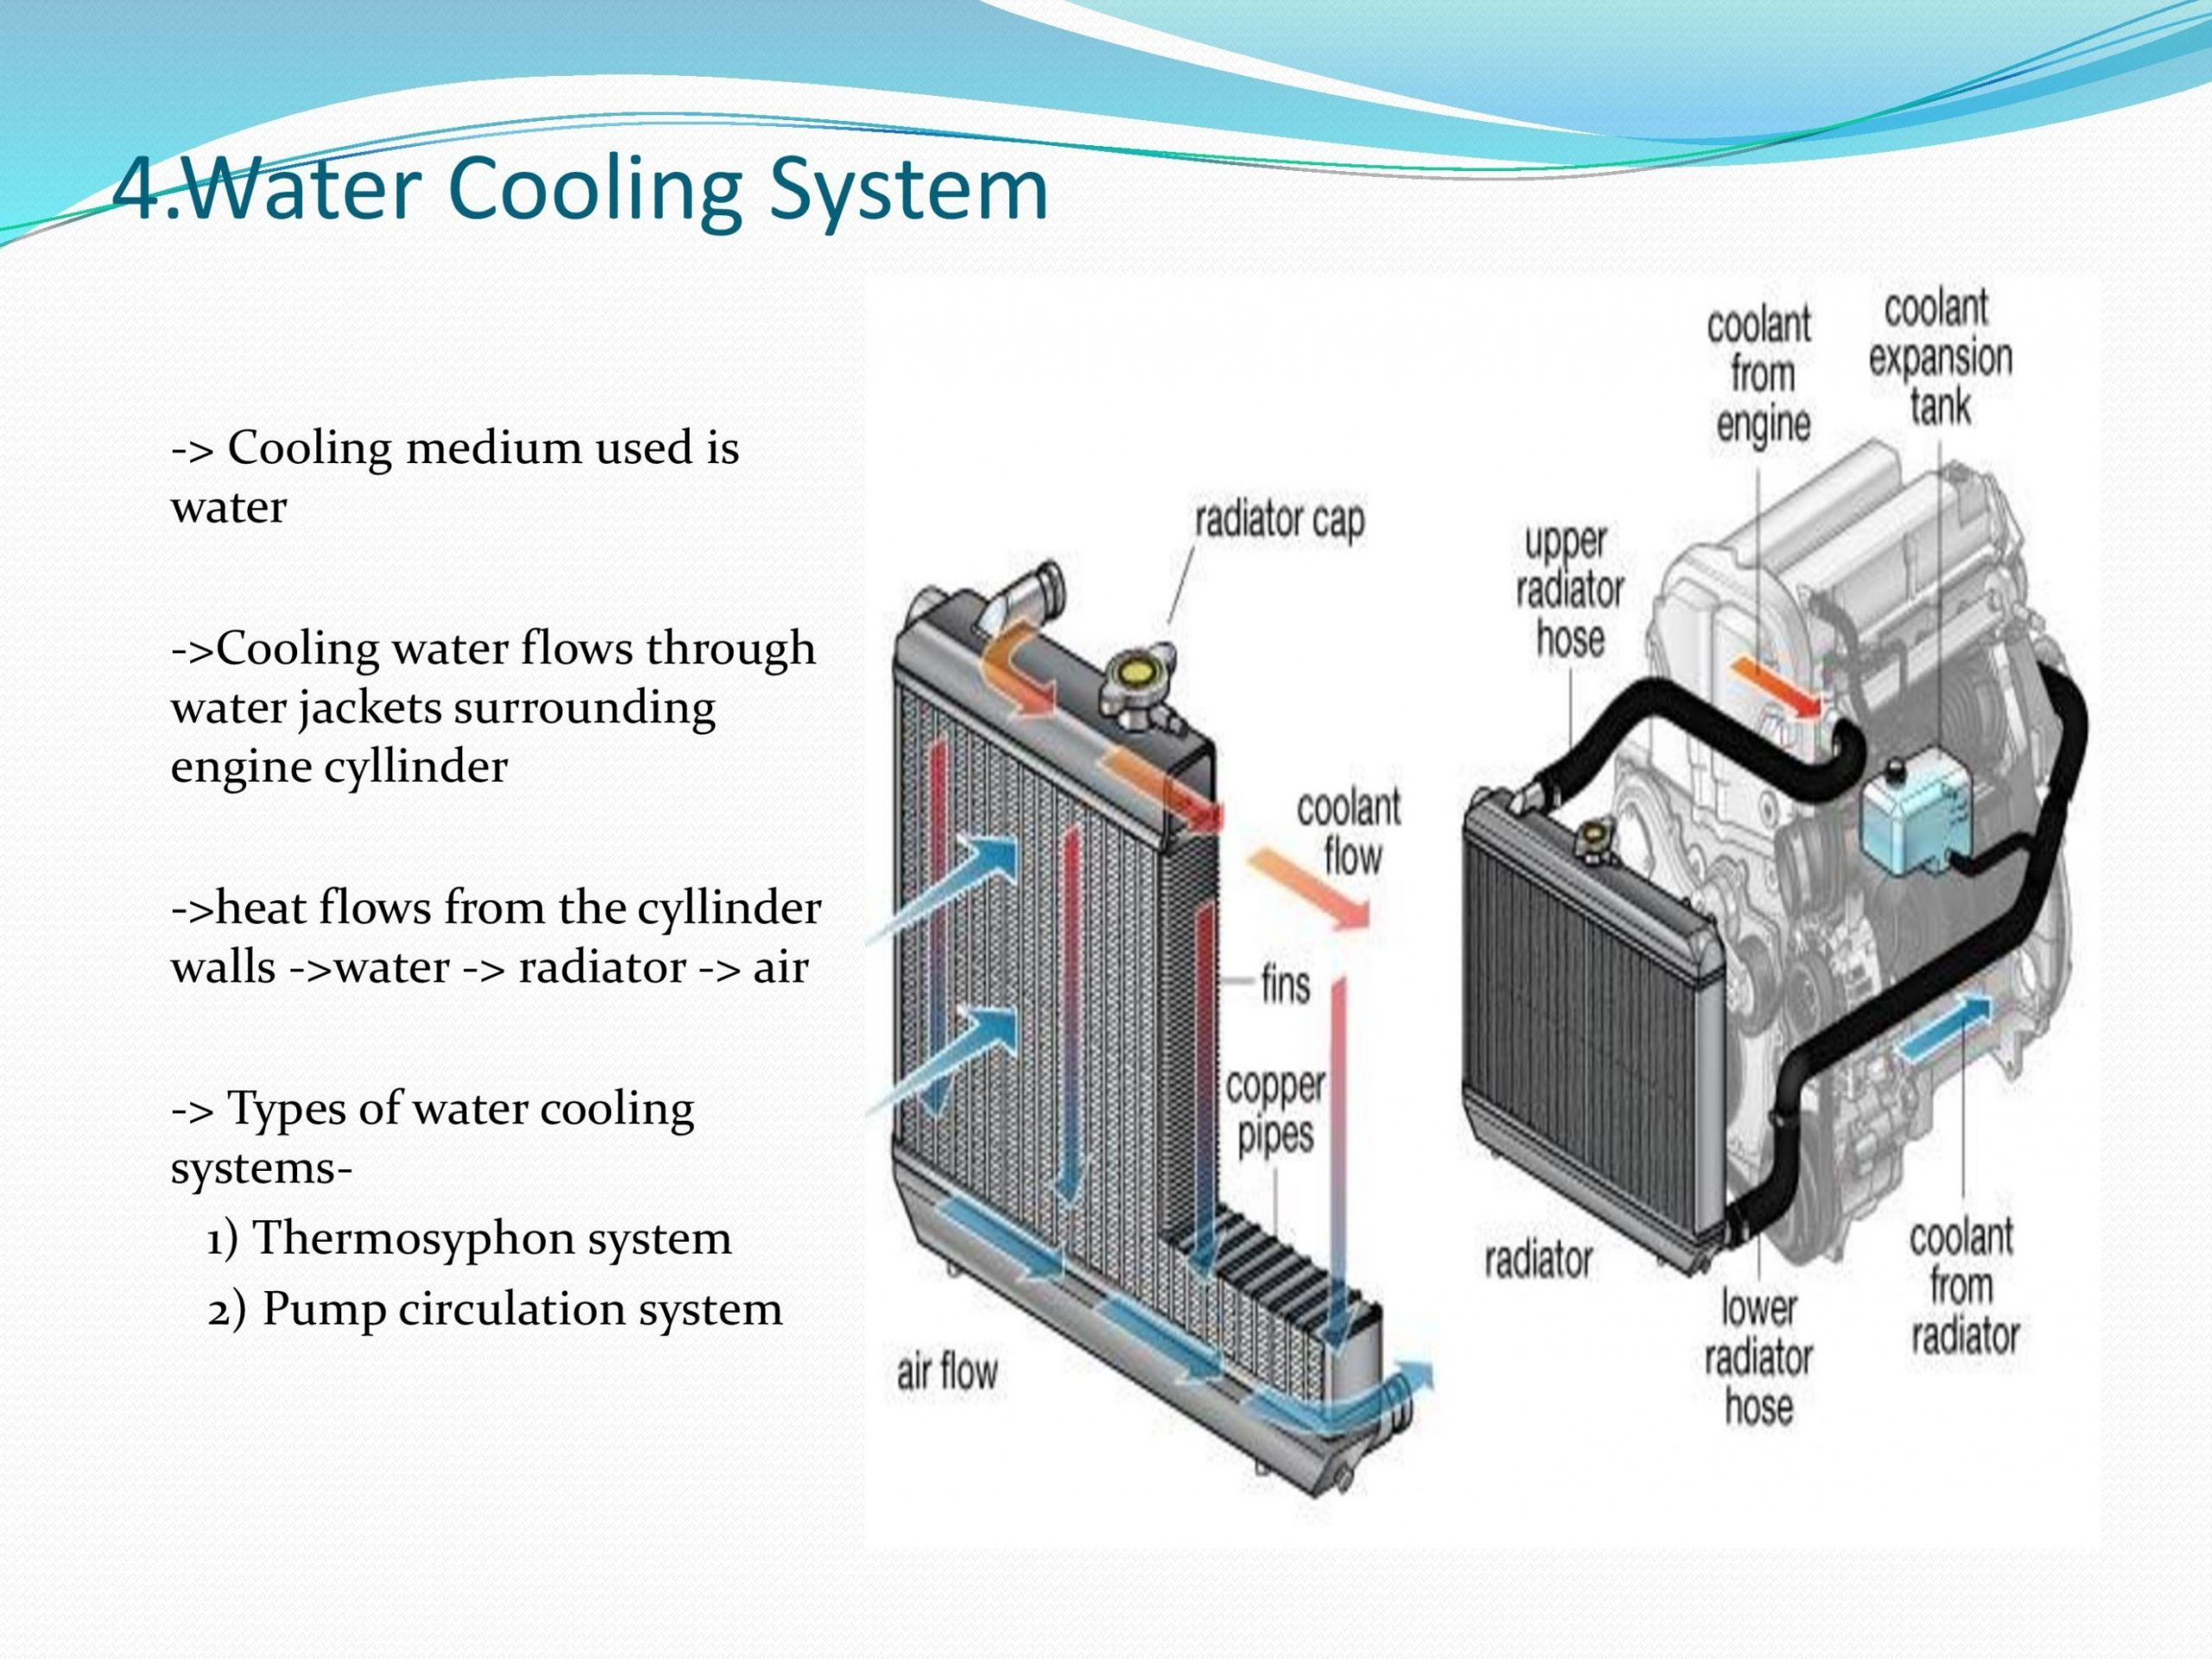 Vanagon Cooling System Overview - Camp Westfalia water cooled engine diagram  free | Engine Diagram in 2020 | Water cooling, Engineering, Cool stuffPinterest